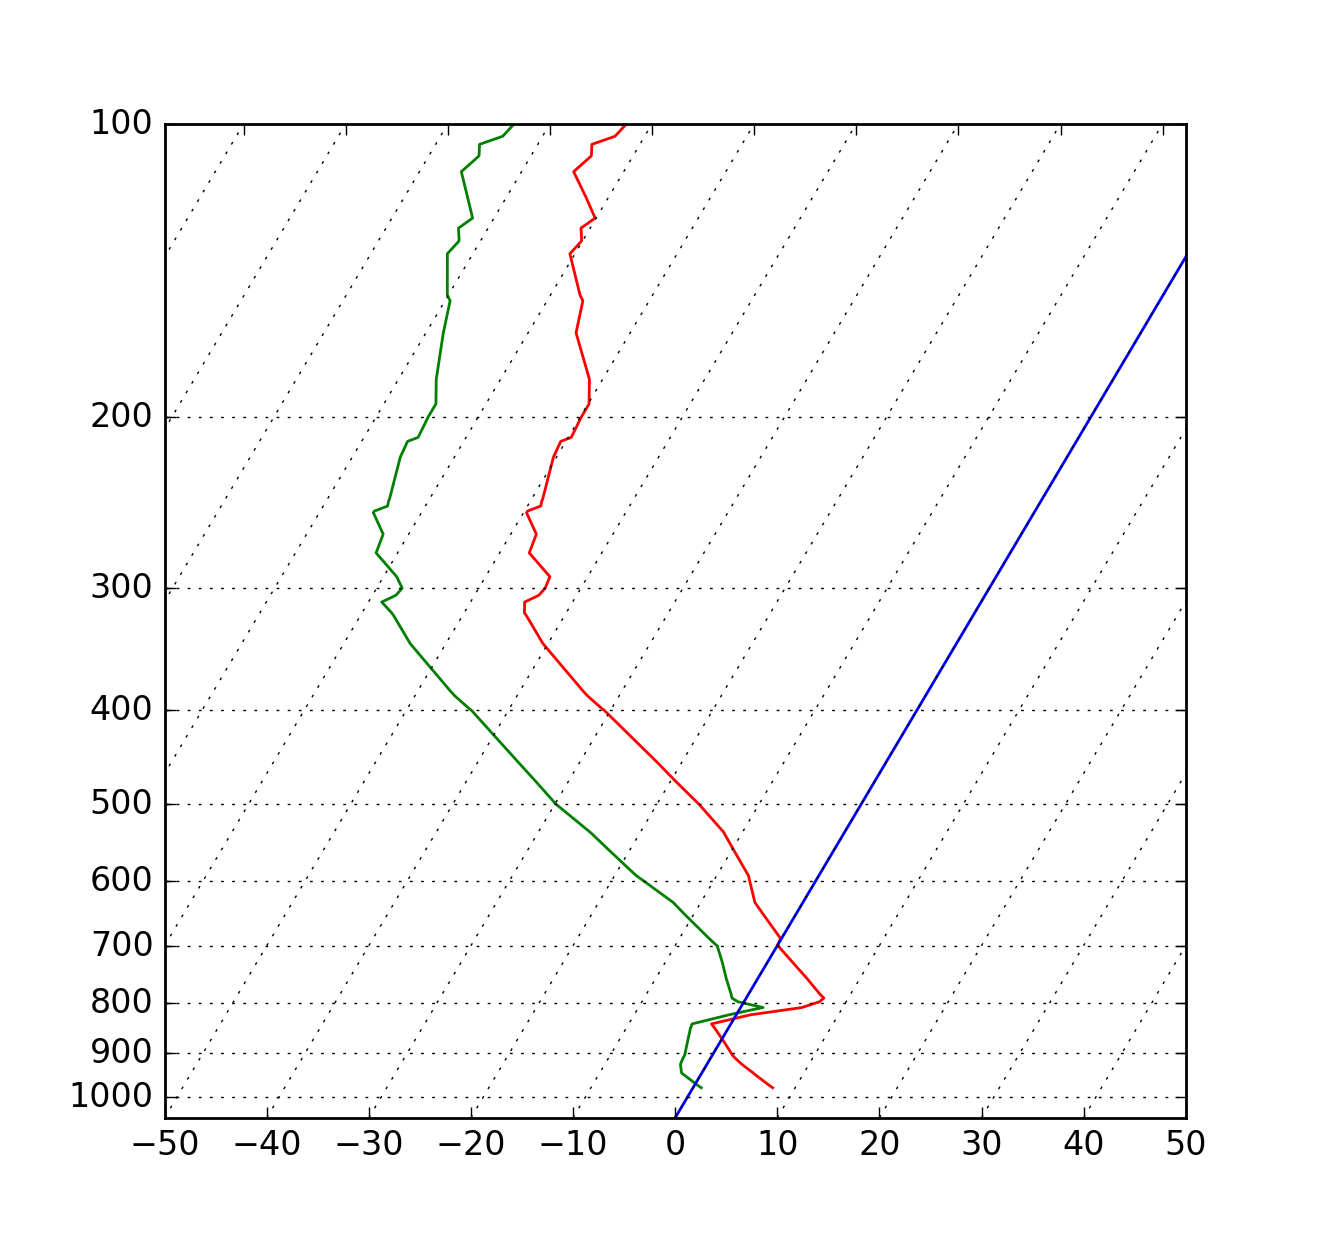 api example code  skewt py  u2014 matplotlib 1 5 0 documentation